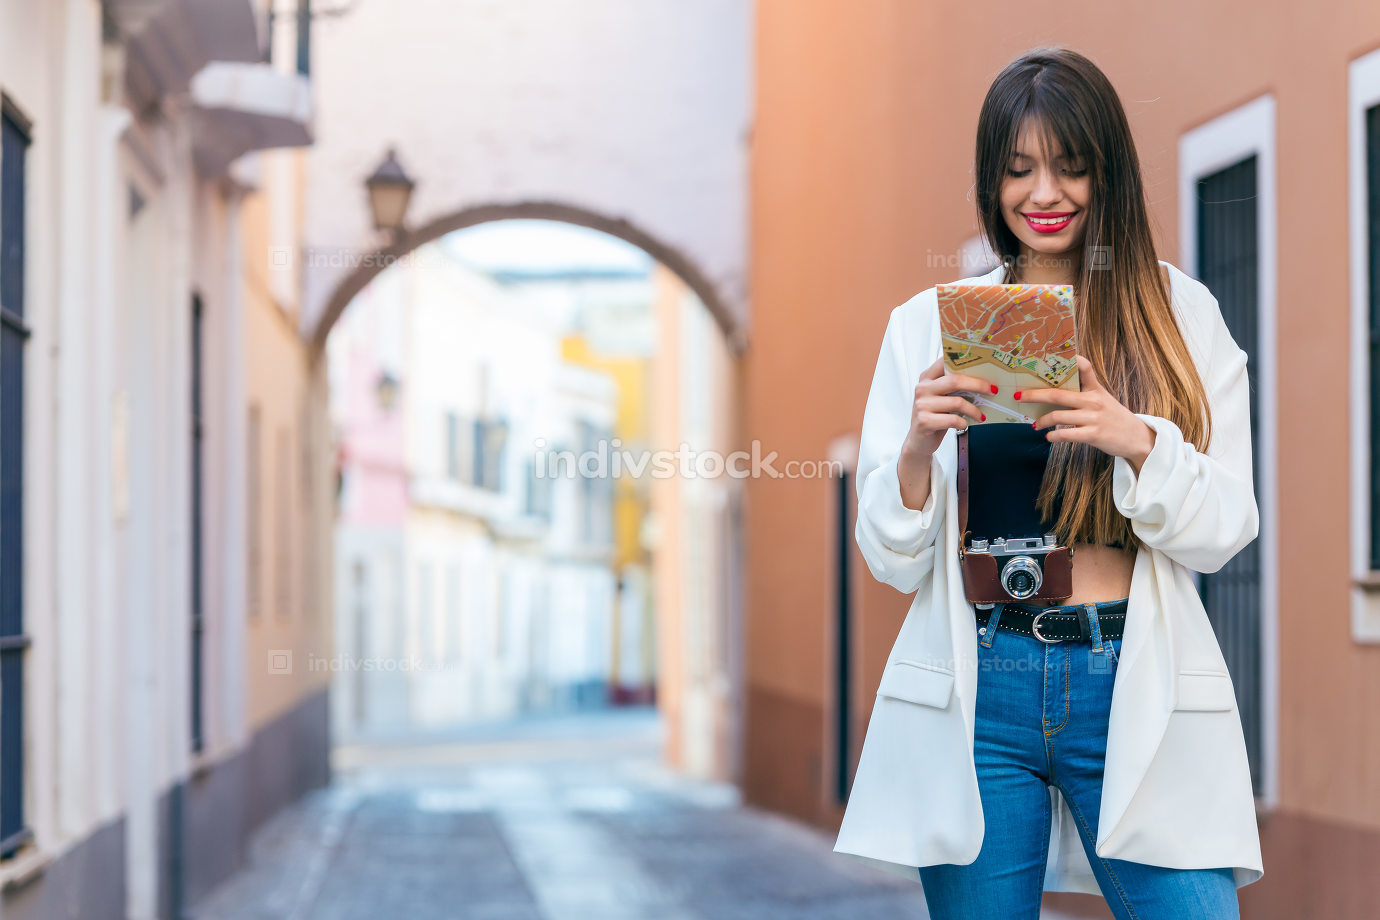 Beautiful young woman traveler with map and camera smiling.